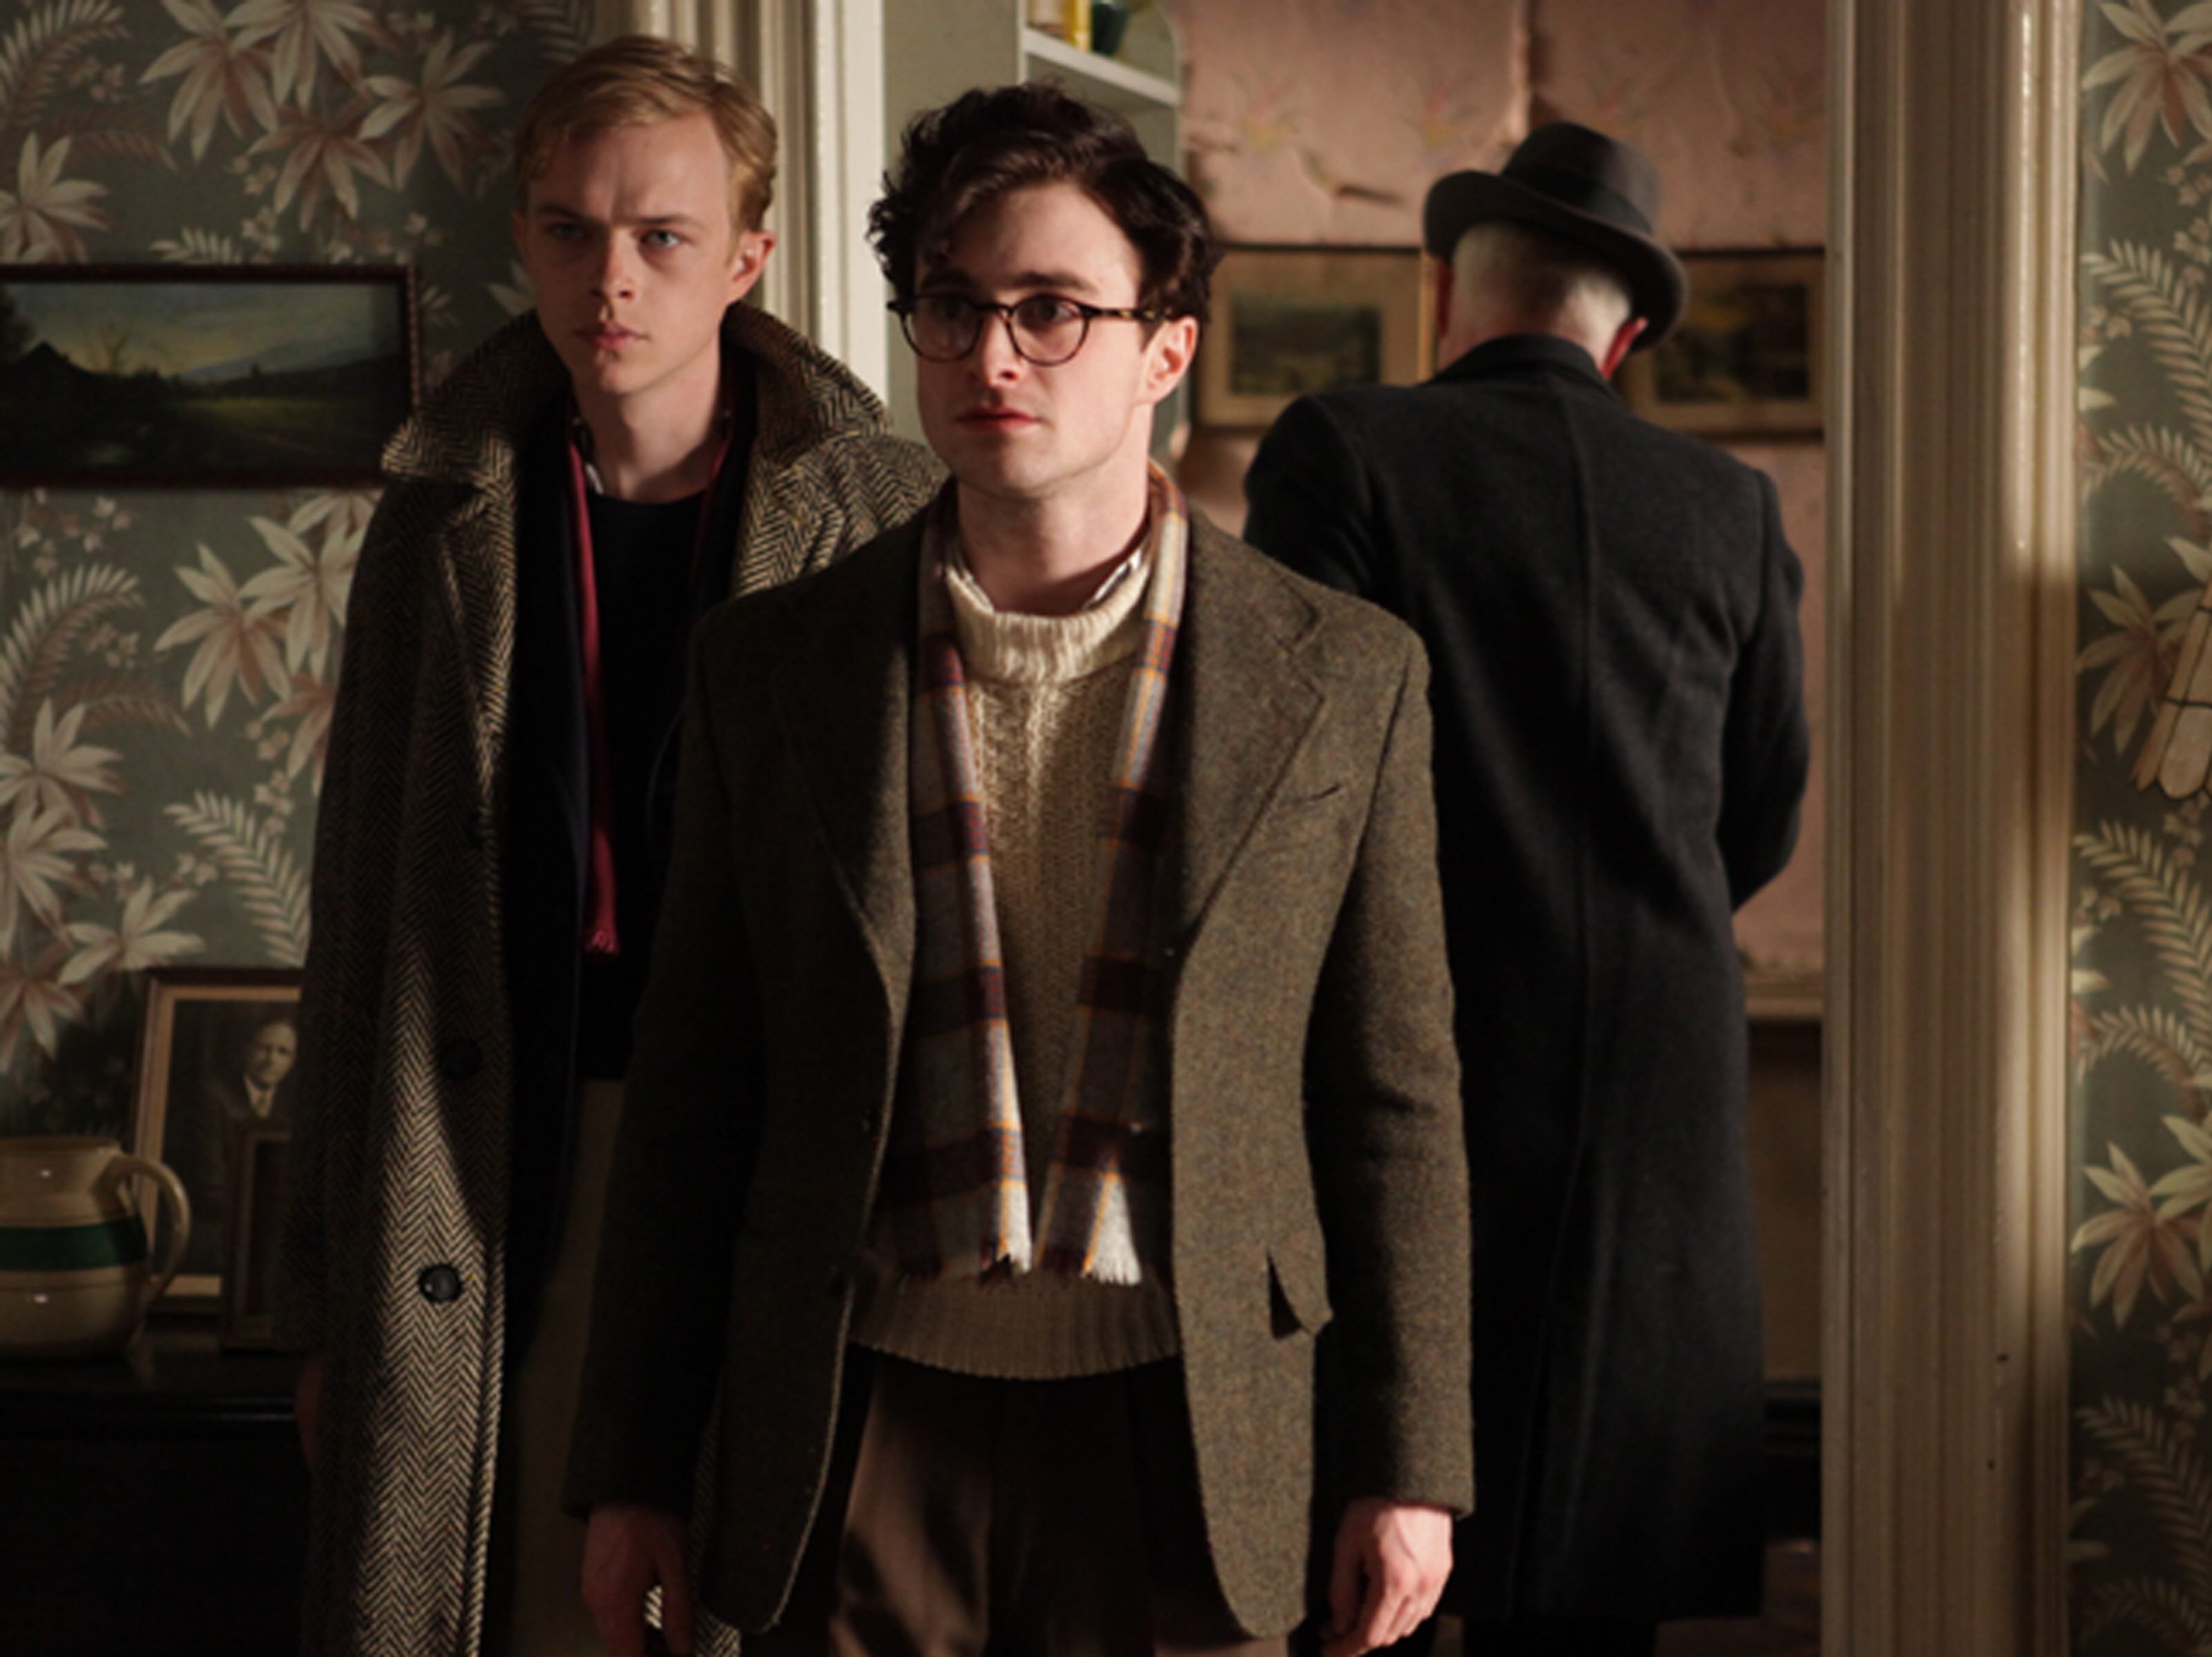 """Radcliffe has taken on a series of unique roles on stage and screen including as a corpse in """"Swiss Army Man"""" and Allen Ginsberg (pictured, with Dane DeHaan) in the film """"Kill Your Darlings."""""""